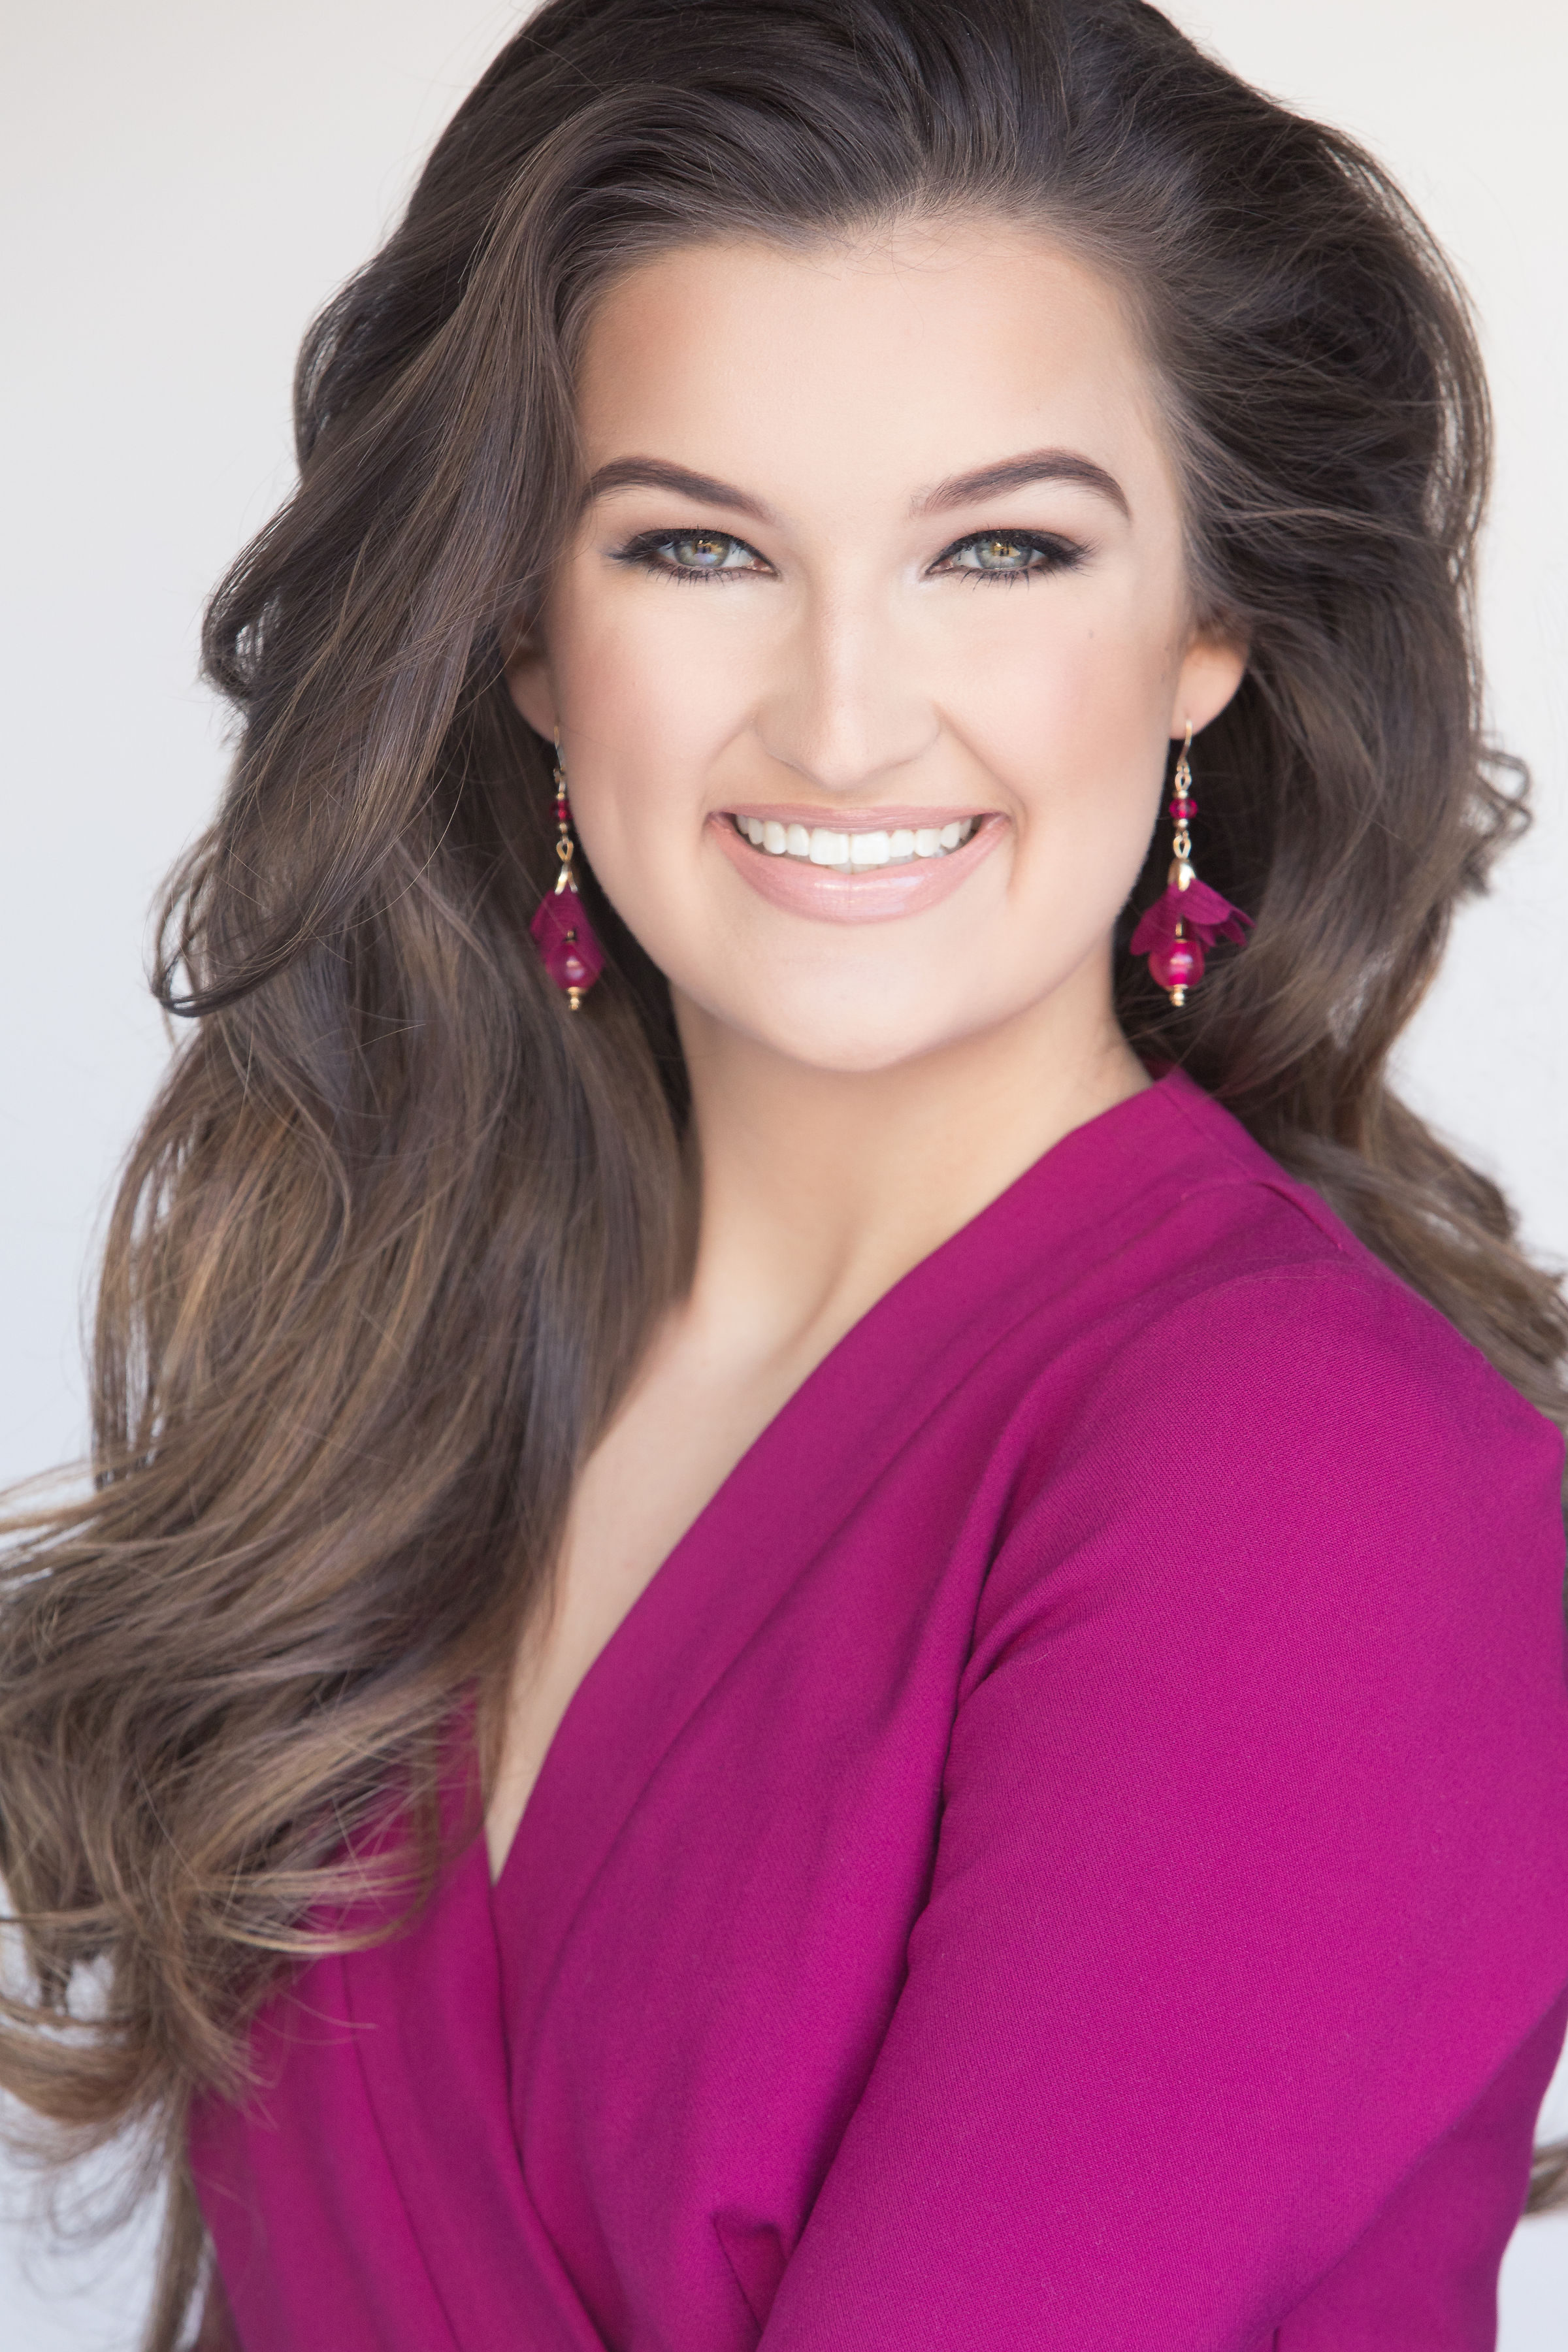 Hannah Young - Miss Georgetown County Teen 2018